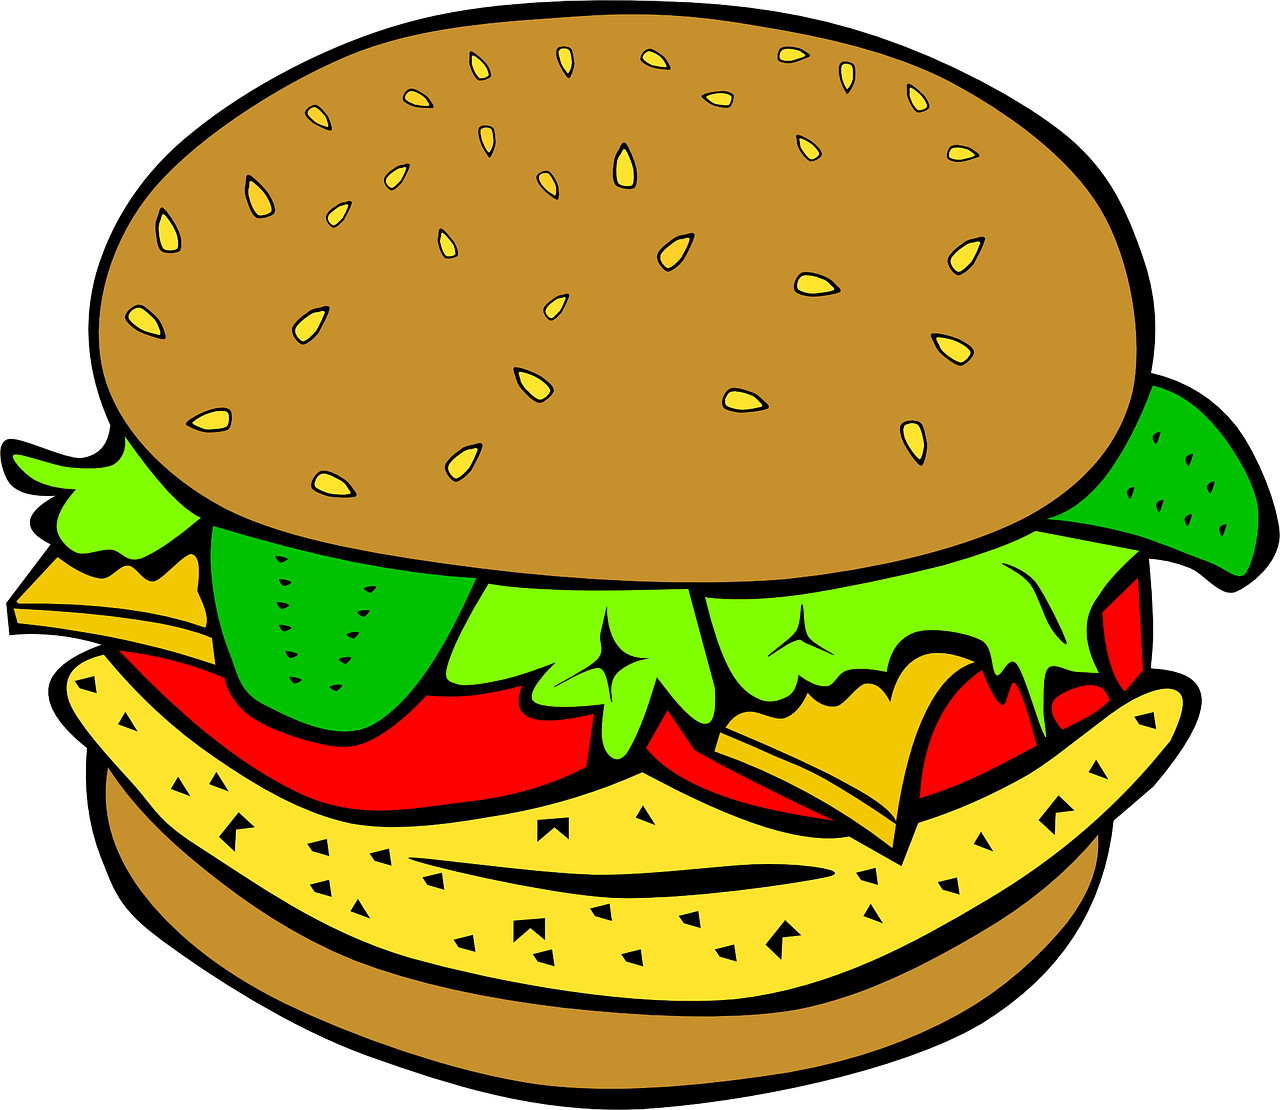 Hamburger clipart burger day. Sandwich meal food pinterest